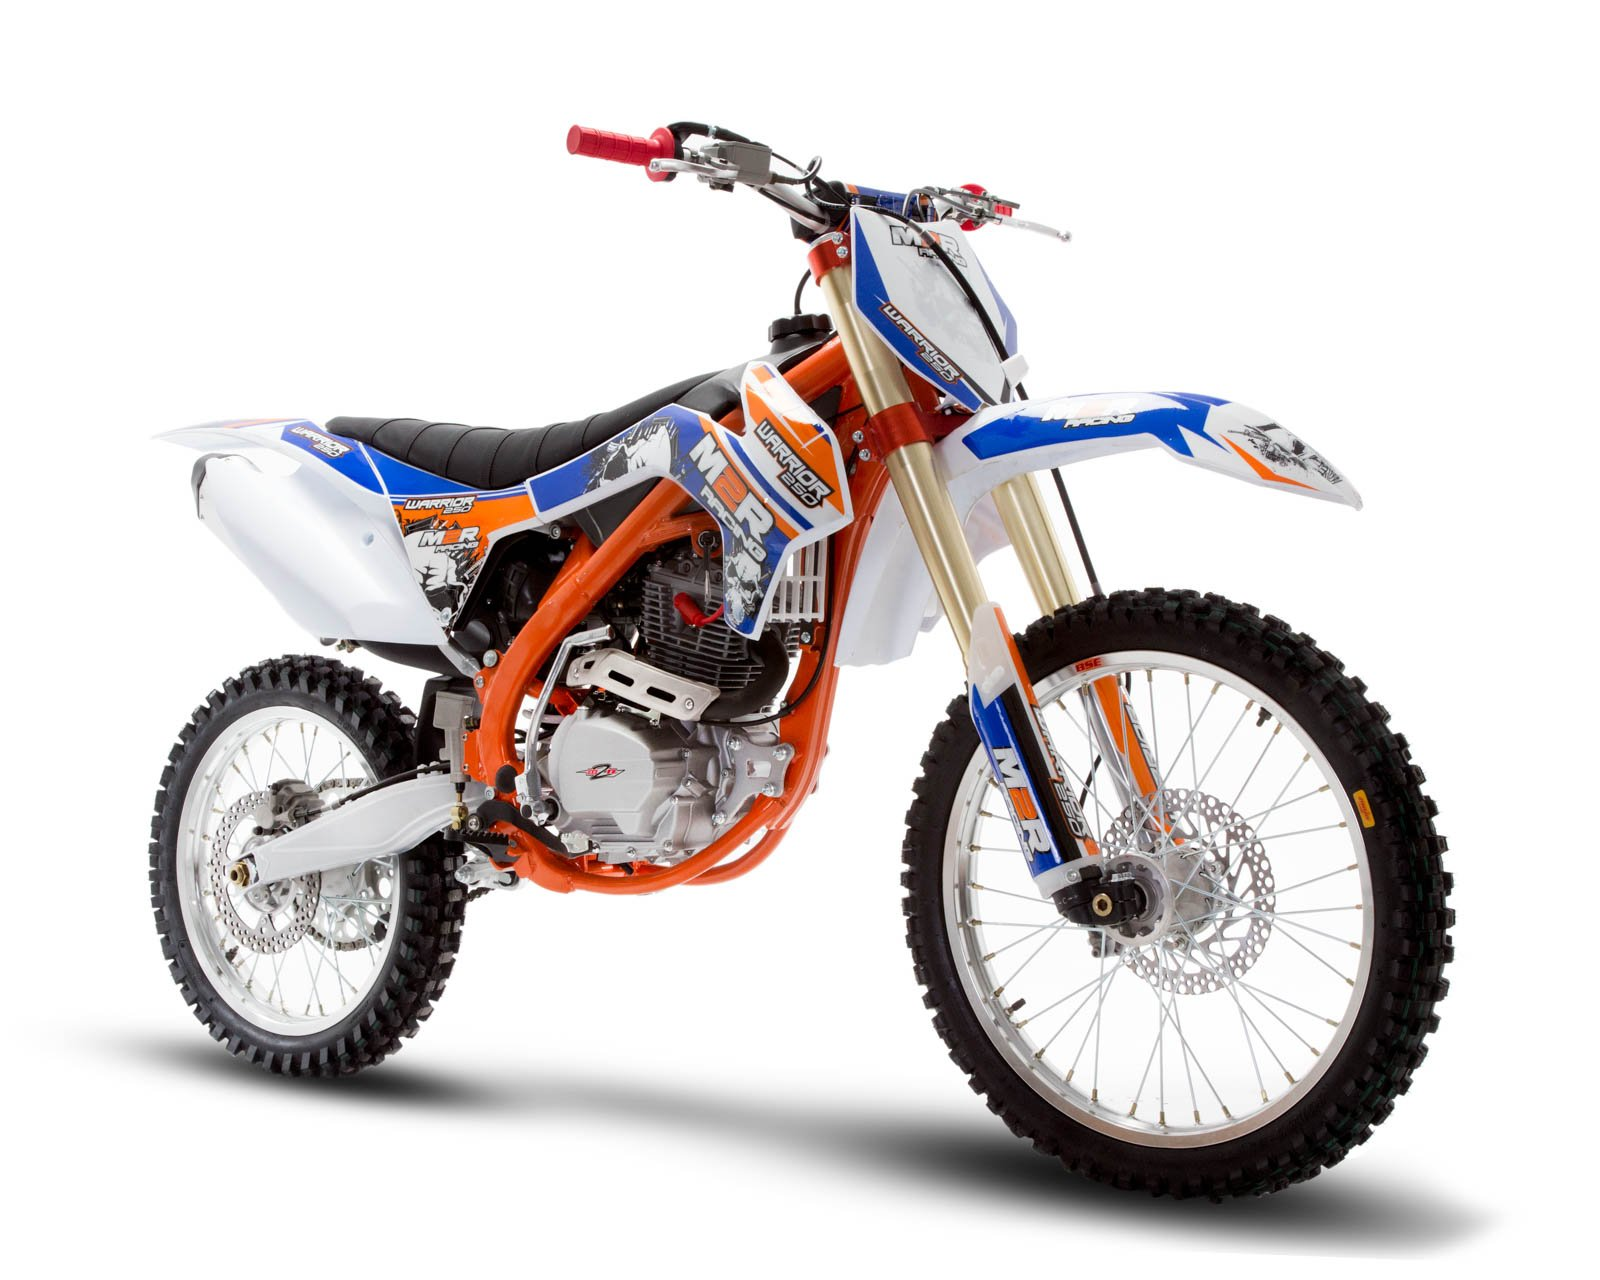 m2r racing warrior j1 250cc 21 18 96cm dirt bike. Black Bedroom Furniture Sets. Home Design Ideas